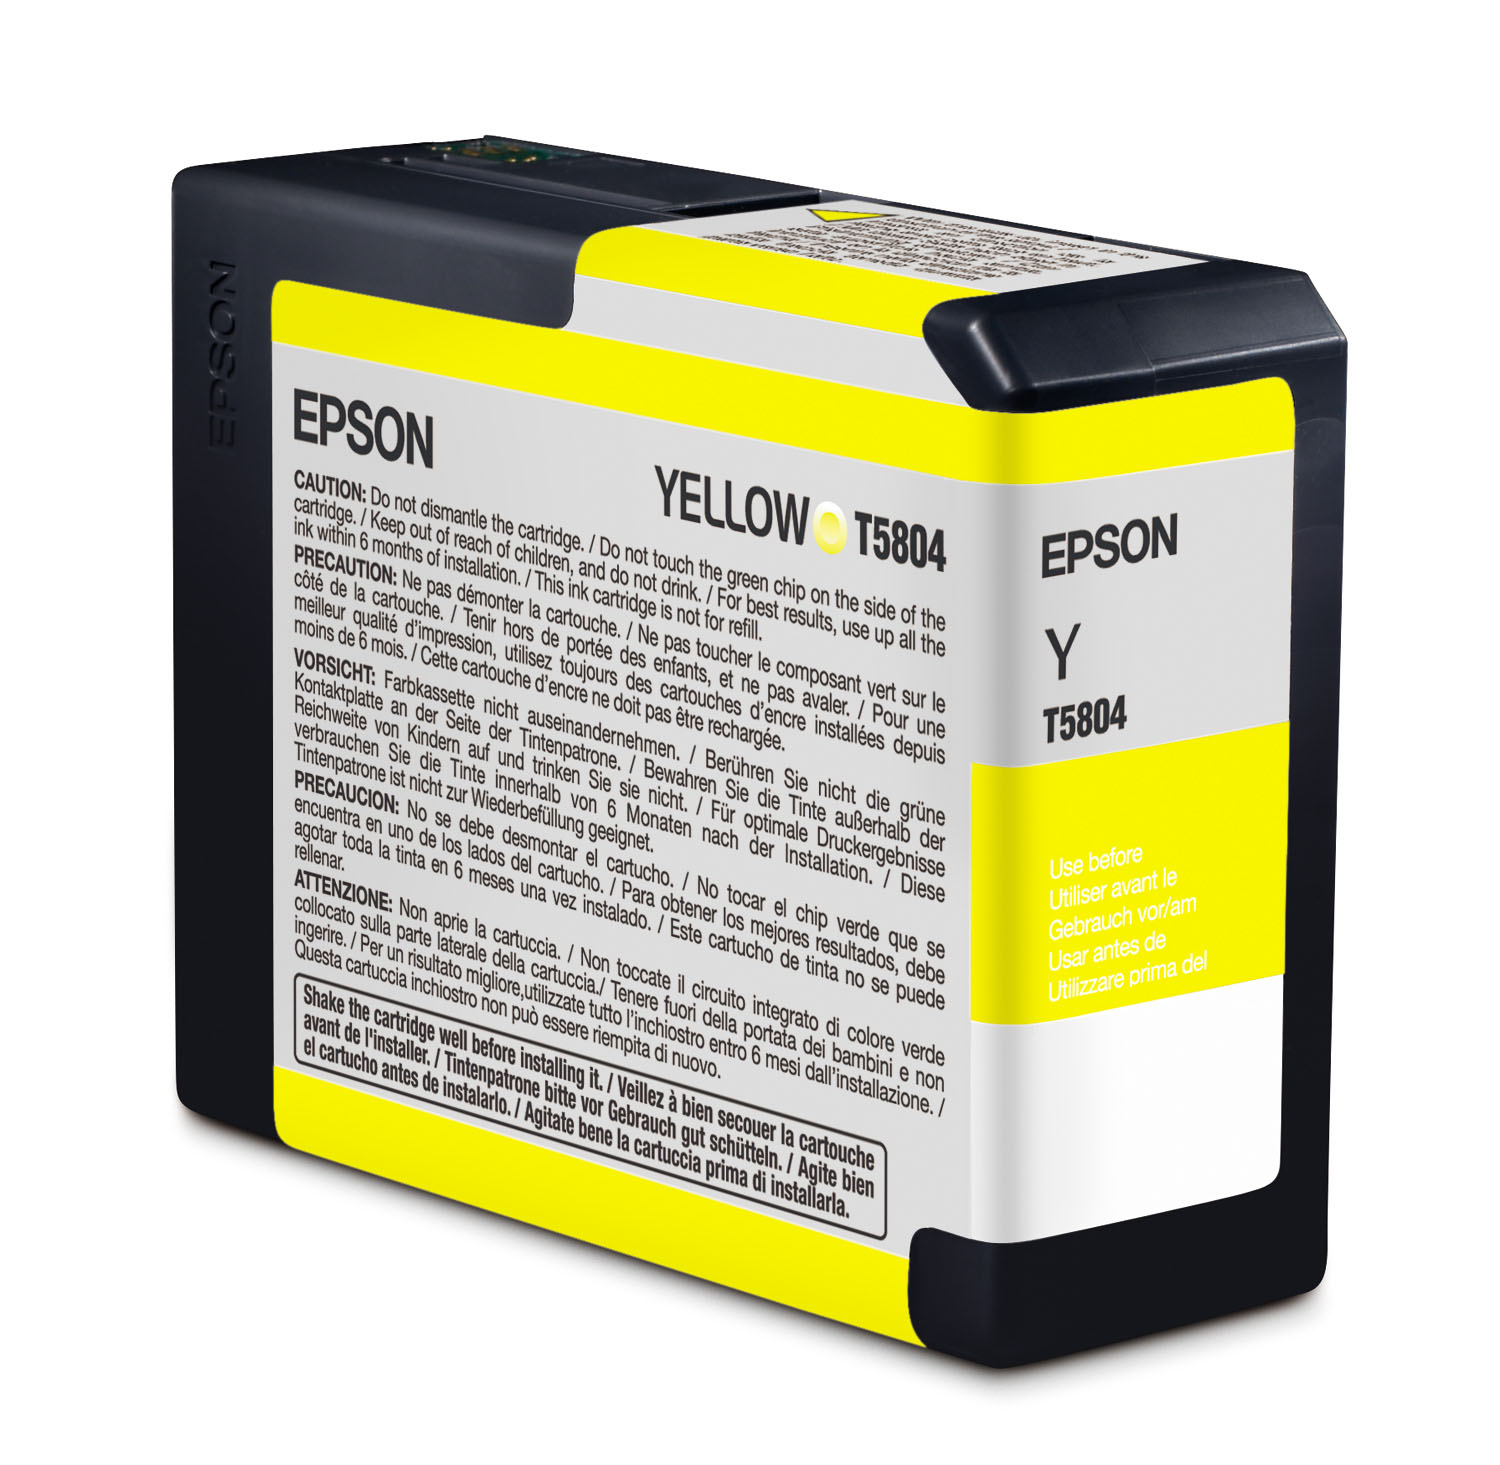 Epson 3800 Yellow Ink 80ml (T580400)